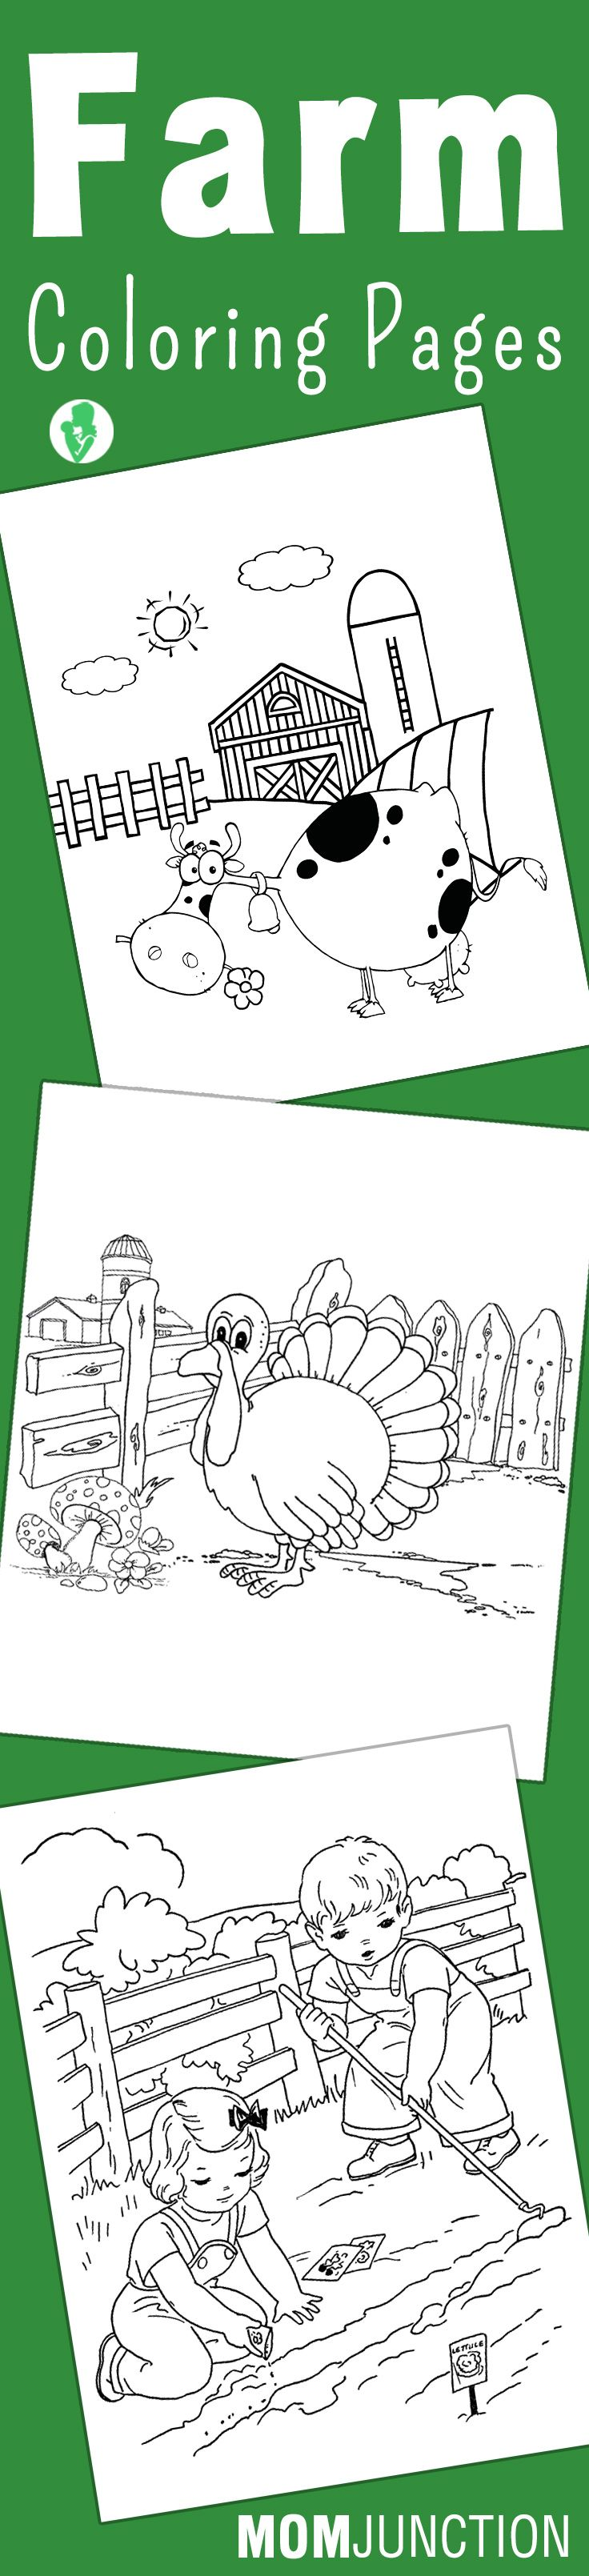 Baby animals coloring pages best coloring pictures pictures to pin on - Top 10 Farm Coloring Pages Your Toddler Will Love To Color